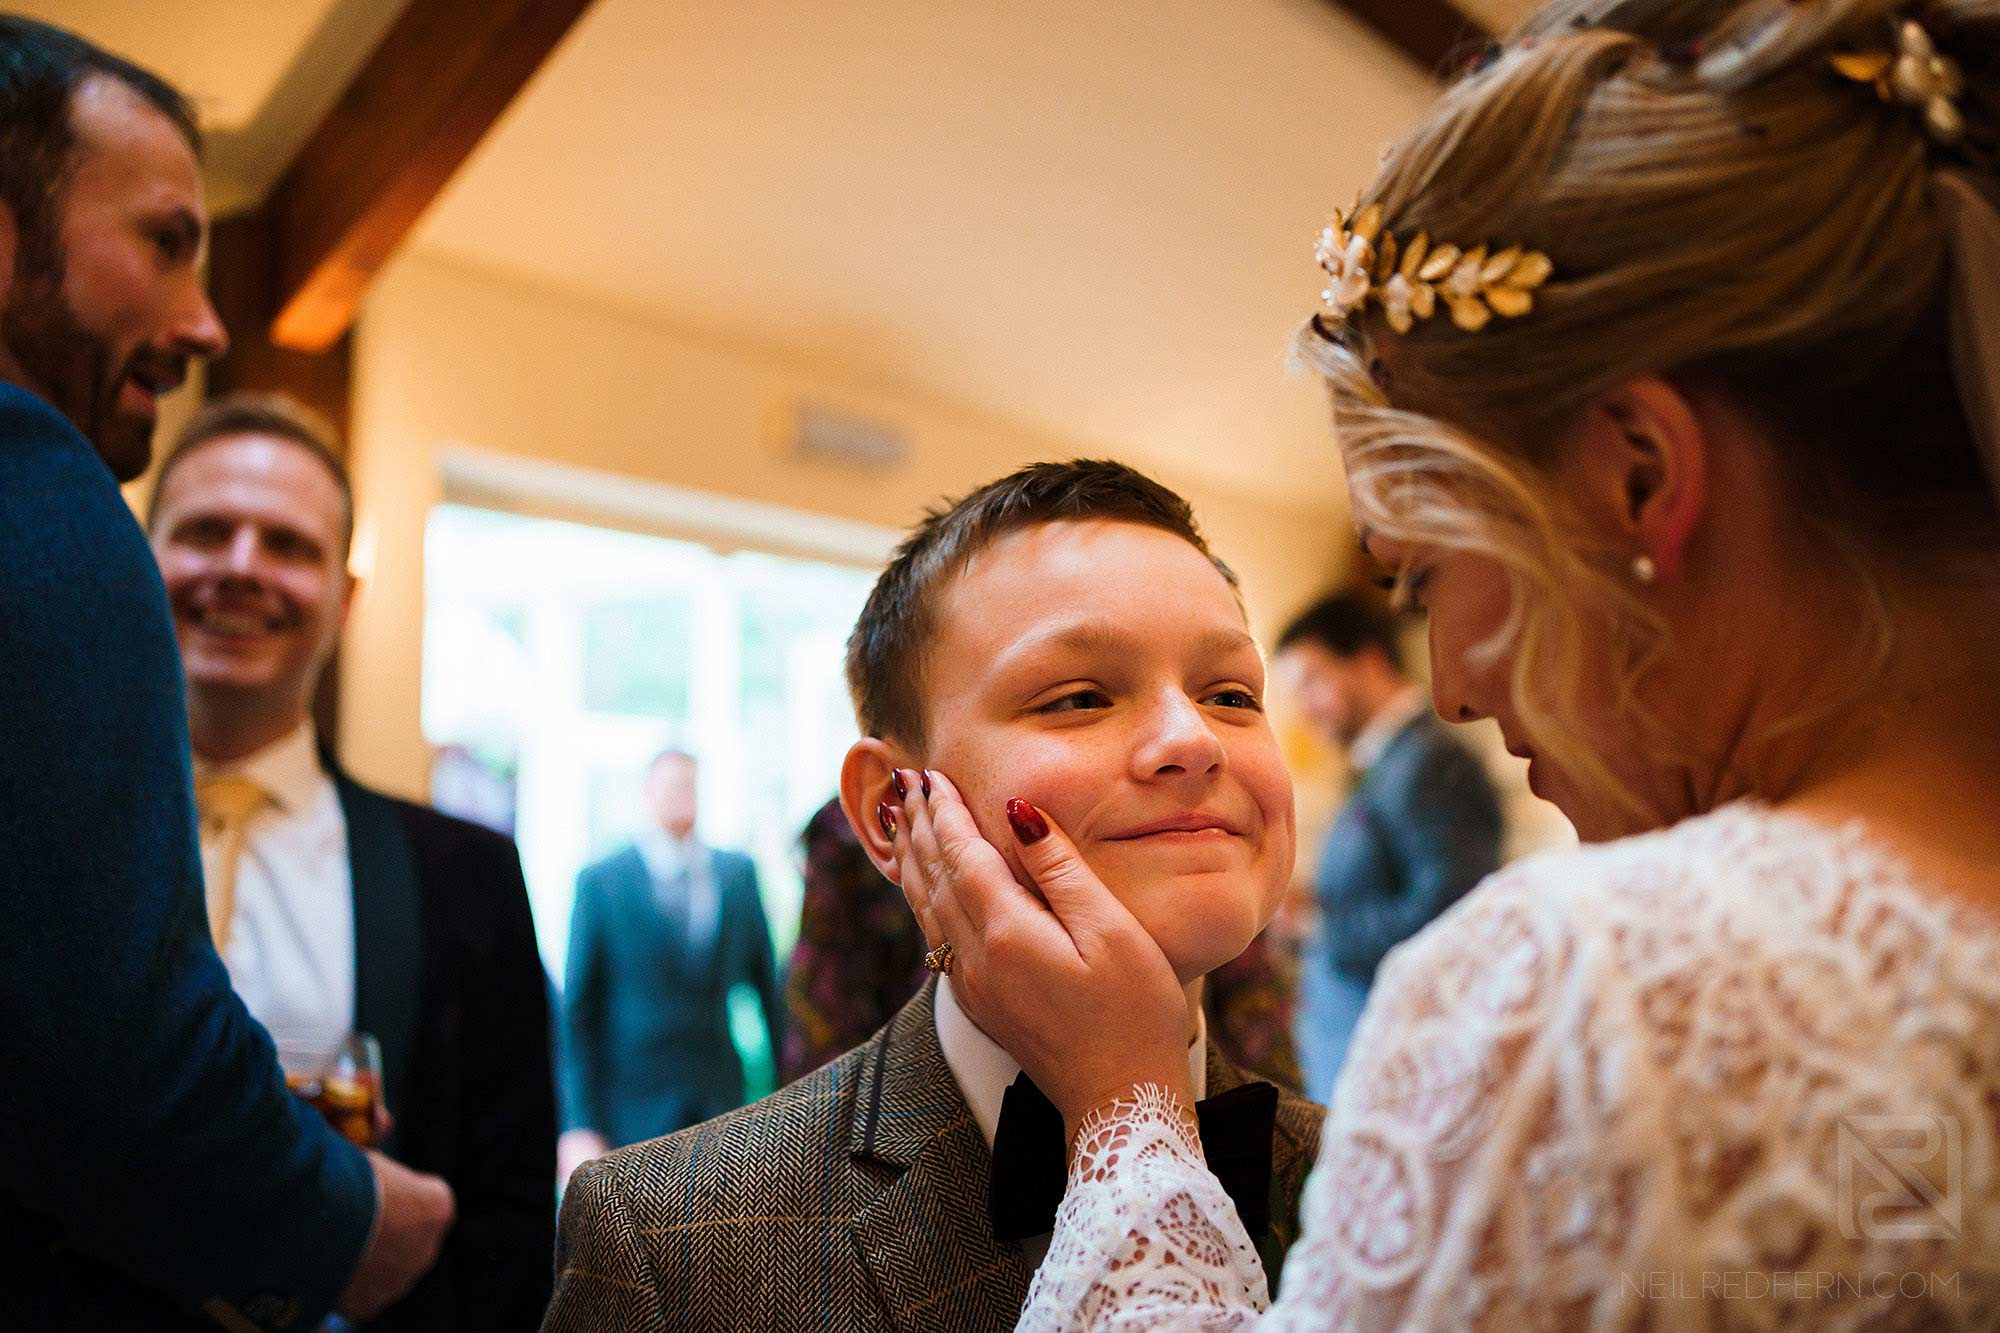 tender moment between bride and son during drinks reception